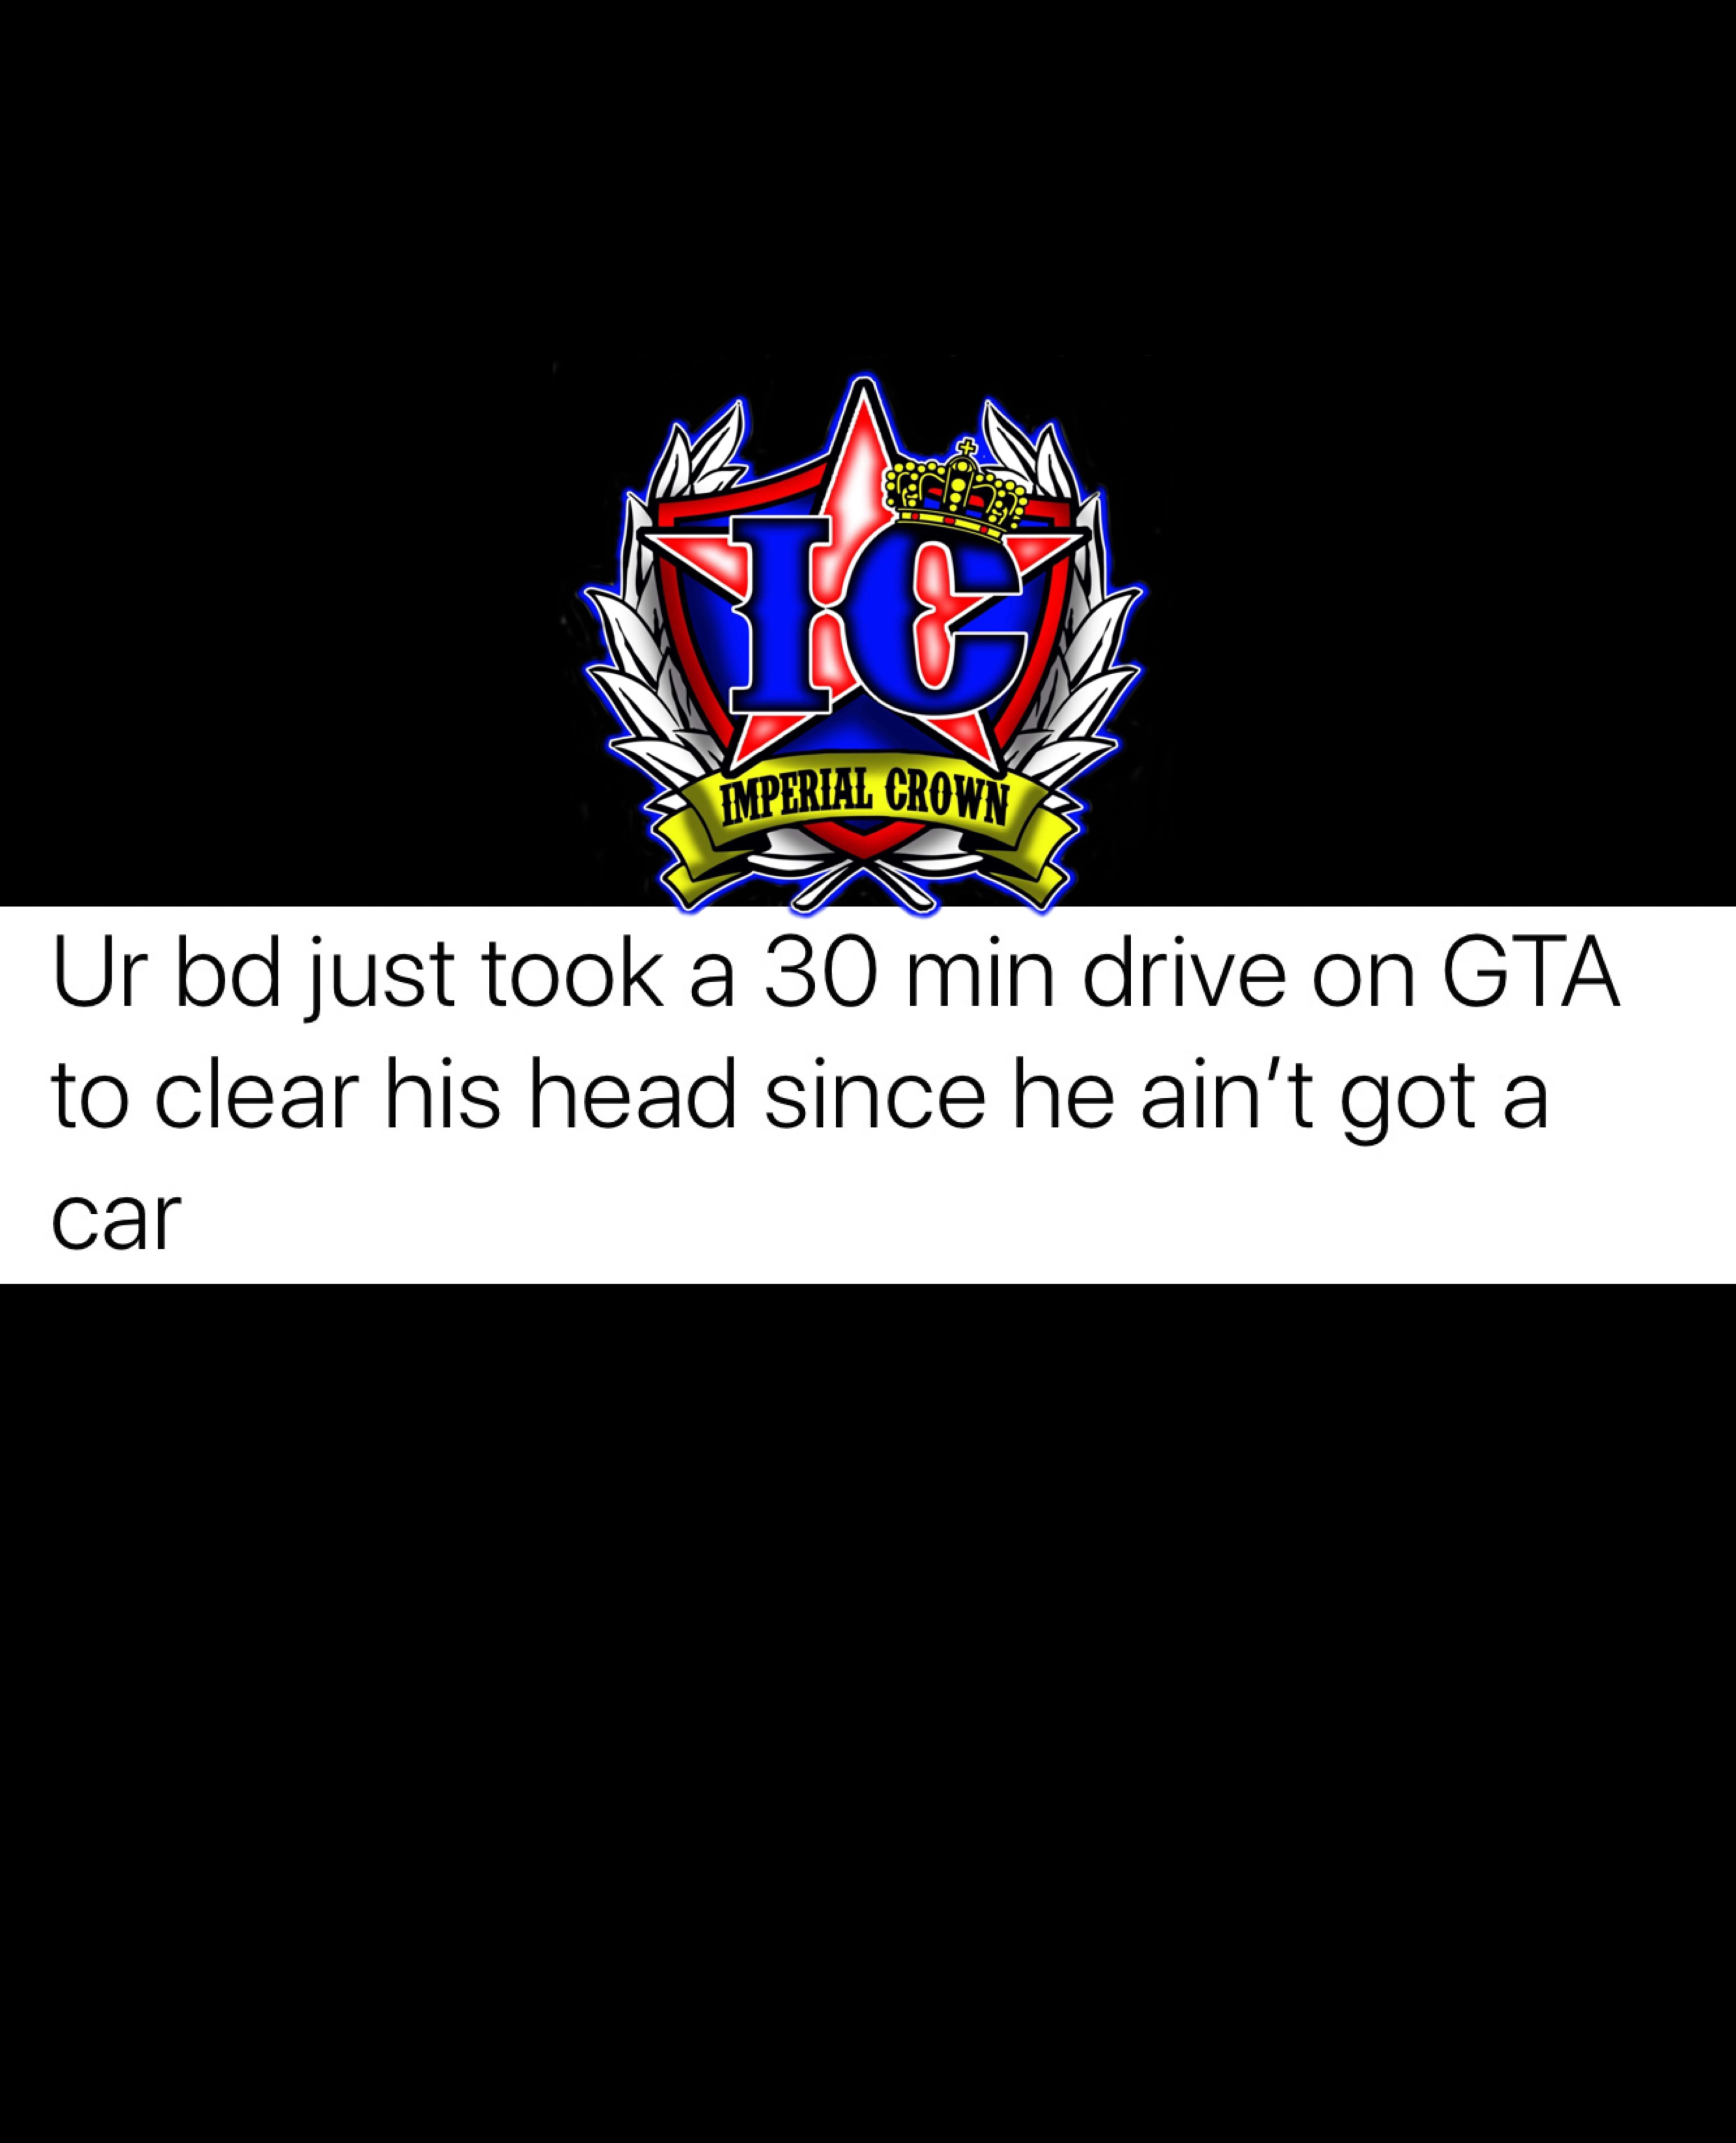 UR BD just took a 30 min drive on GTA to clear his head since he ain't got a car